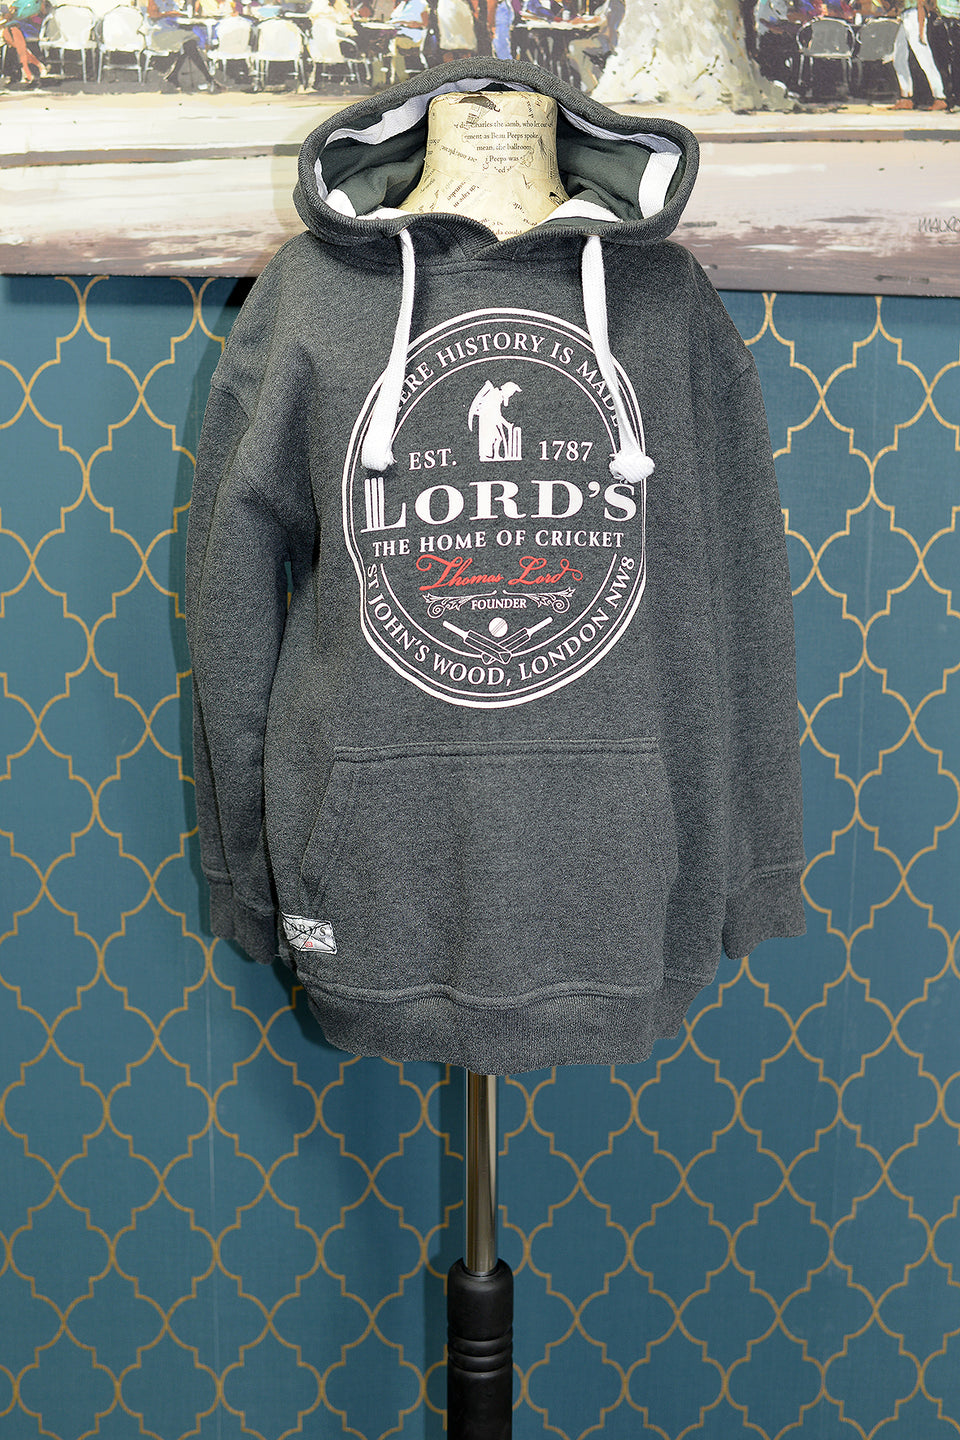 LORD'S The Home of Cricket, Boys Grey Hoodie, Size 11-12 Years. Pre-loved.